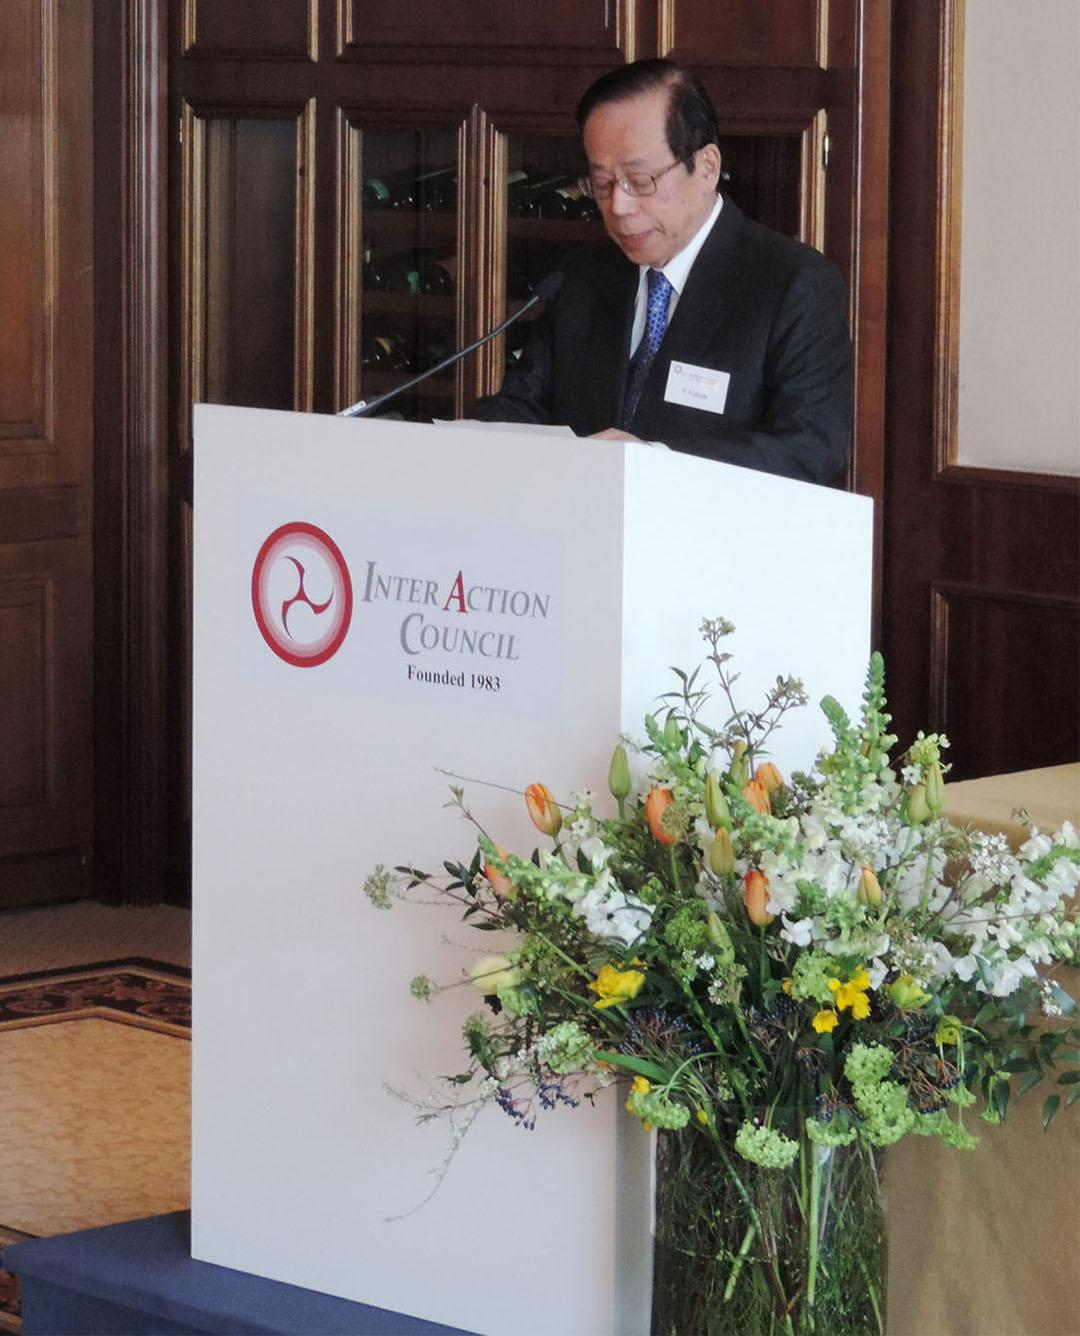 The Vienna Declaration: Putting Global Ethical Standards